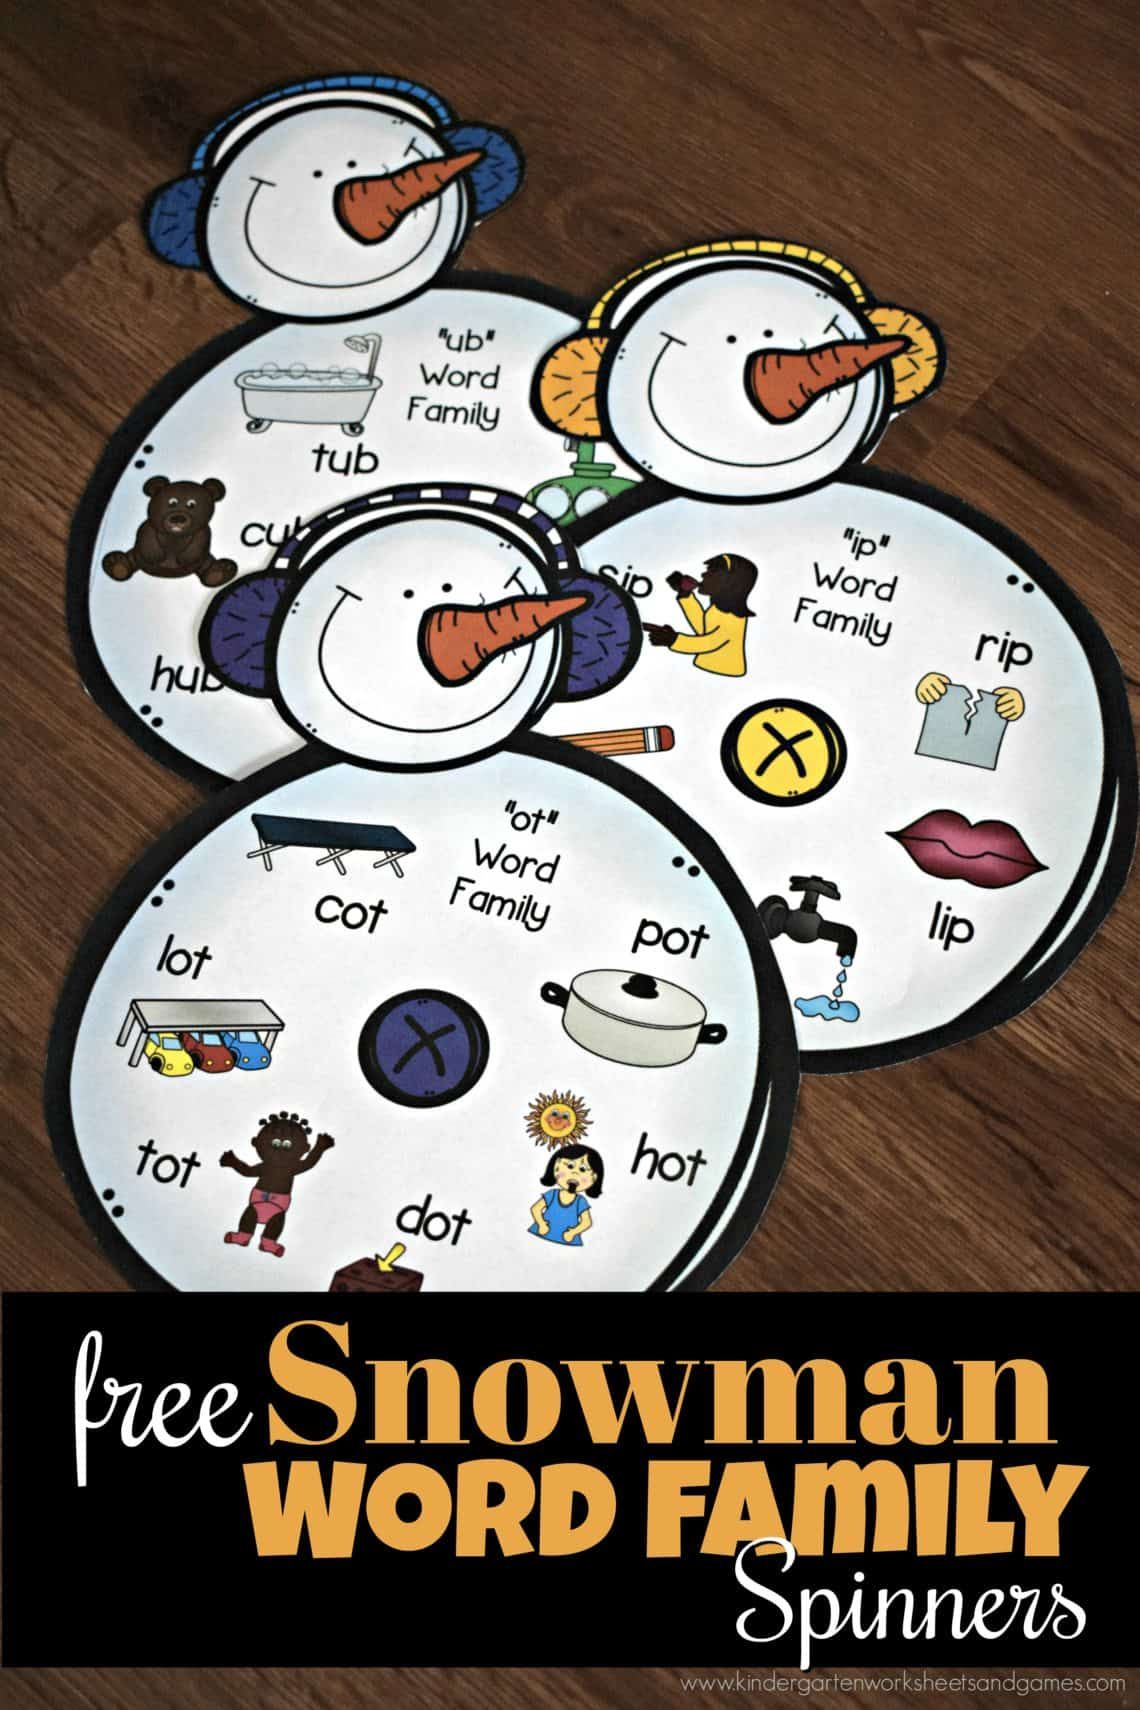 Free Snowman Word Family Spinner